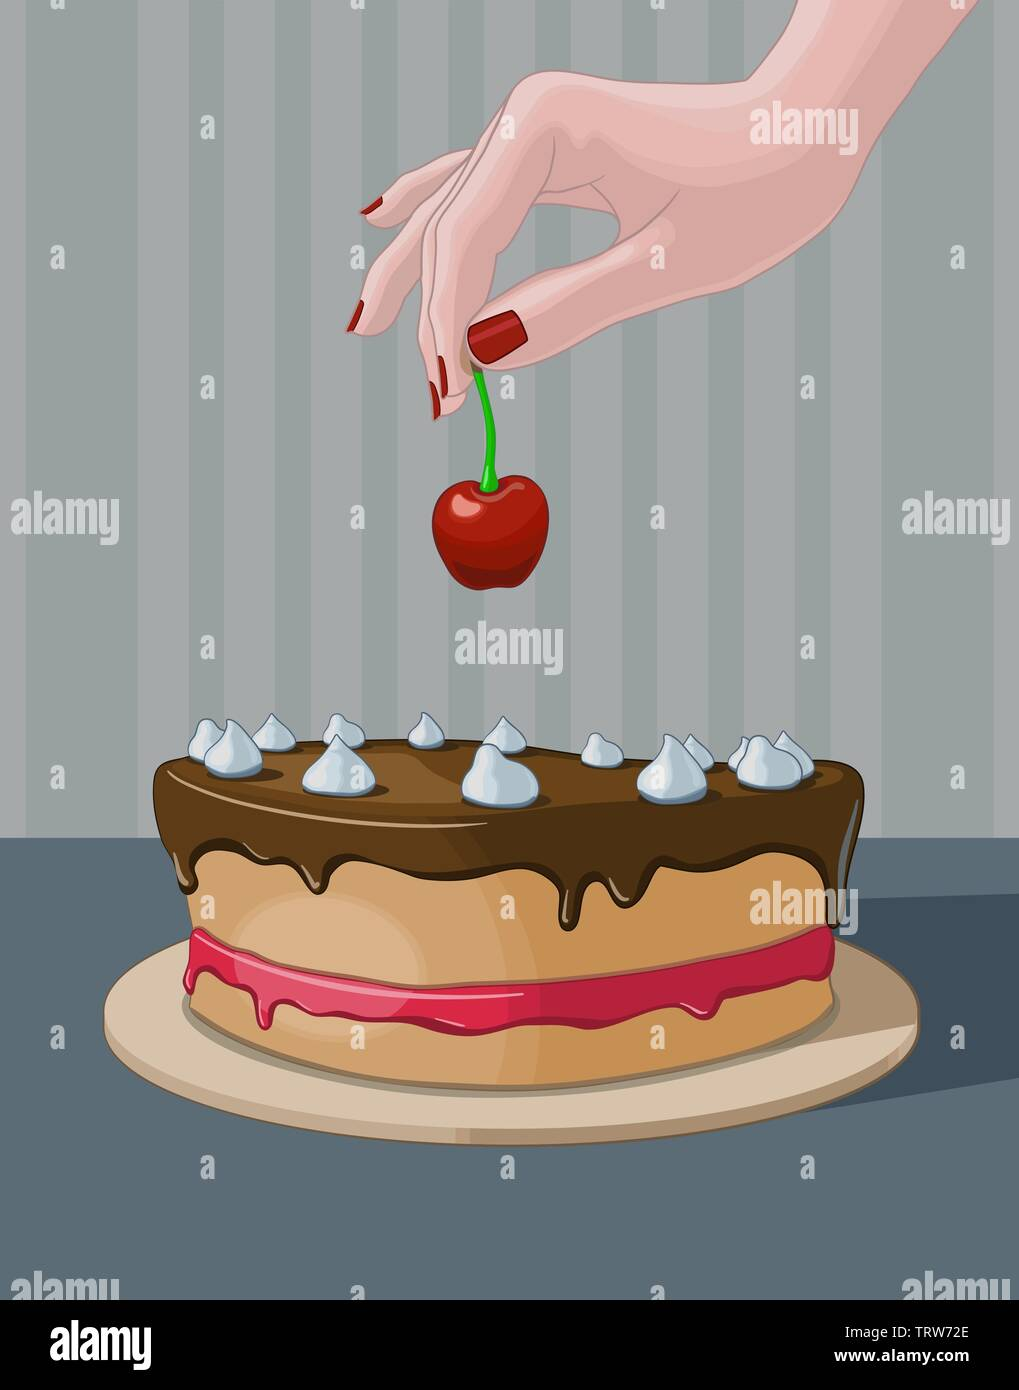 Woman's hand decorating a cake with a cherry. Vector illustration. - Stock Vector